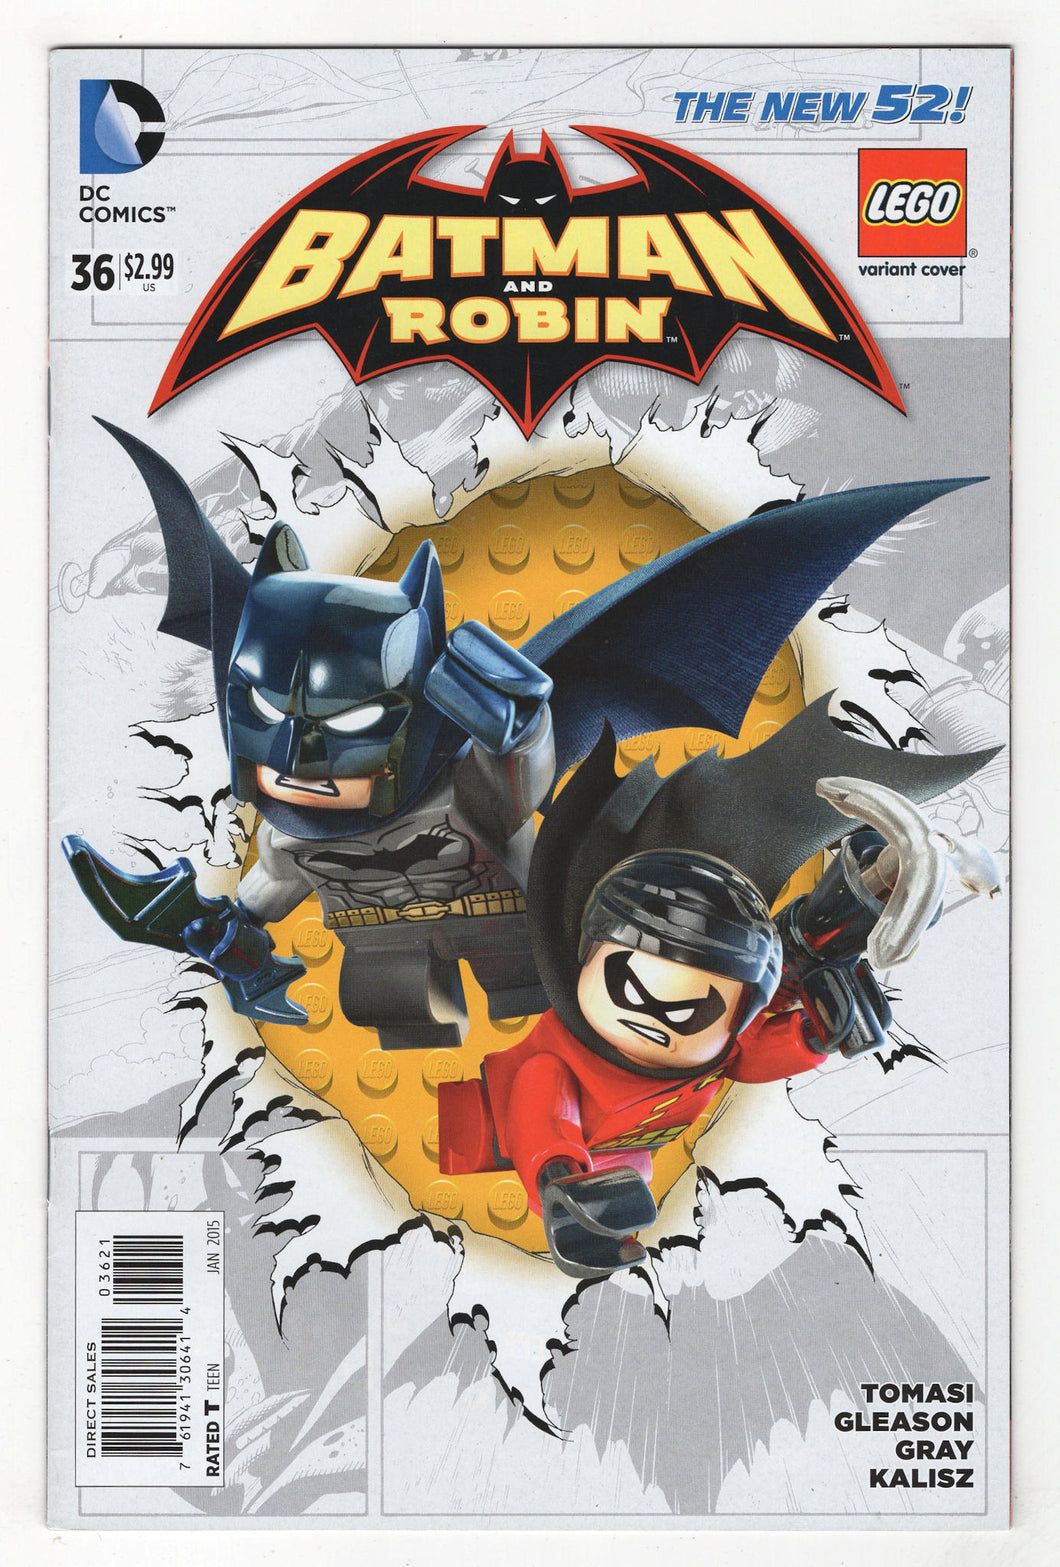 Batman and Robin #36 Lego Variant Cover Front